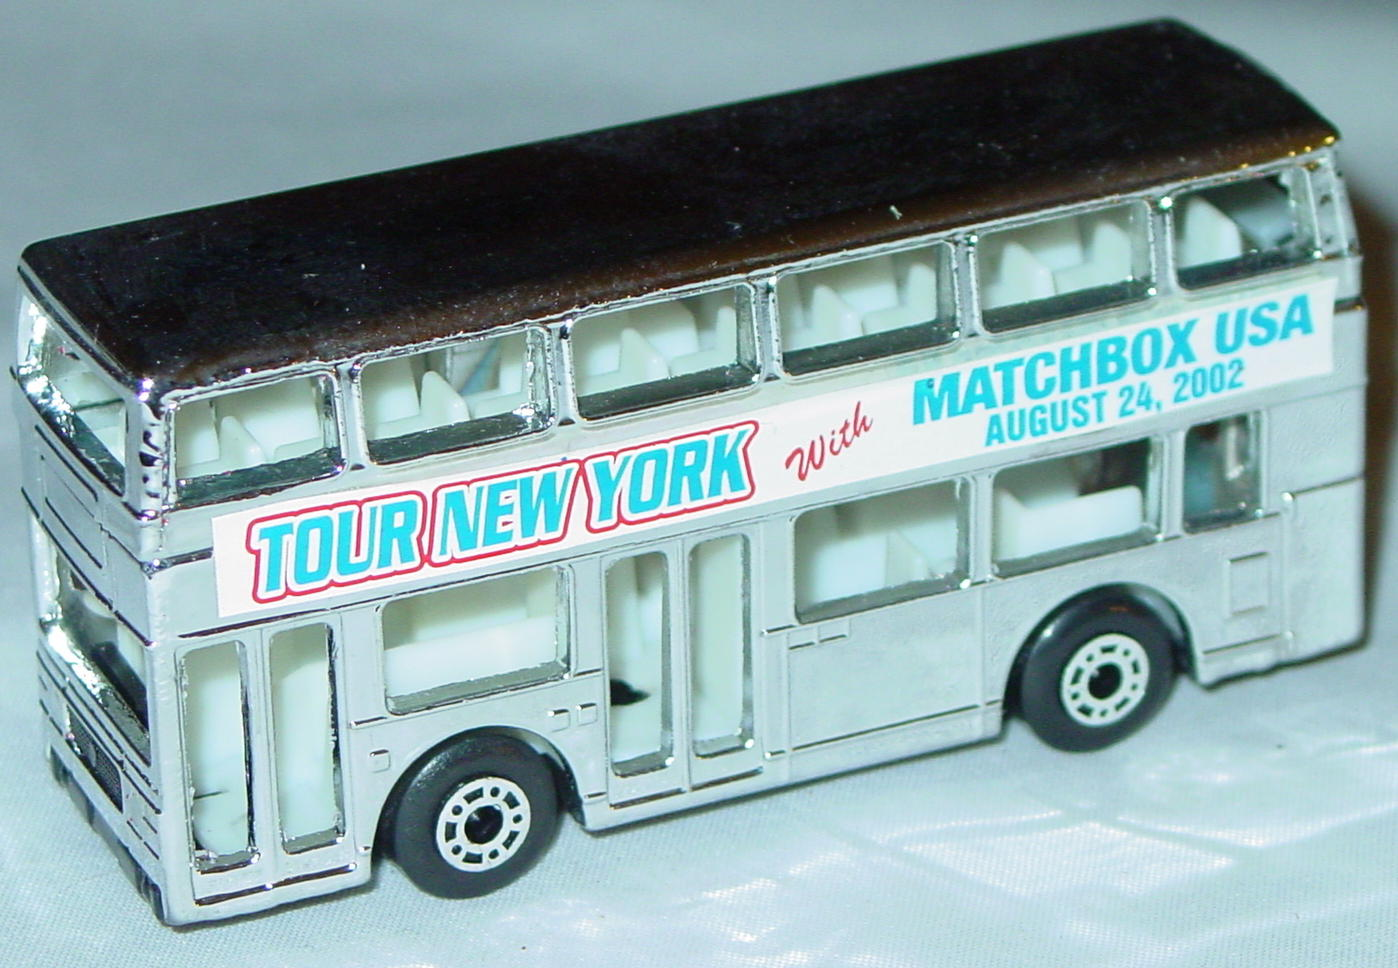 ASAP-CCI 17 C 66 - Titan Bus Chrome Tour NY Matchbox USA CCI